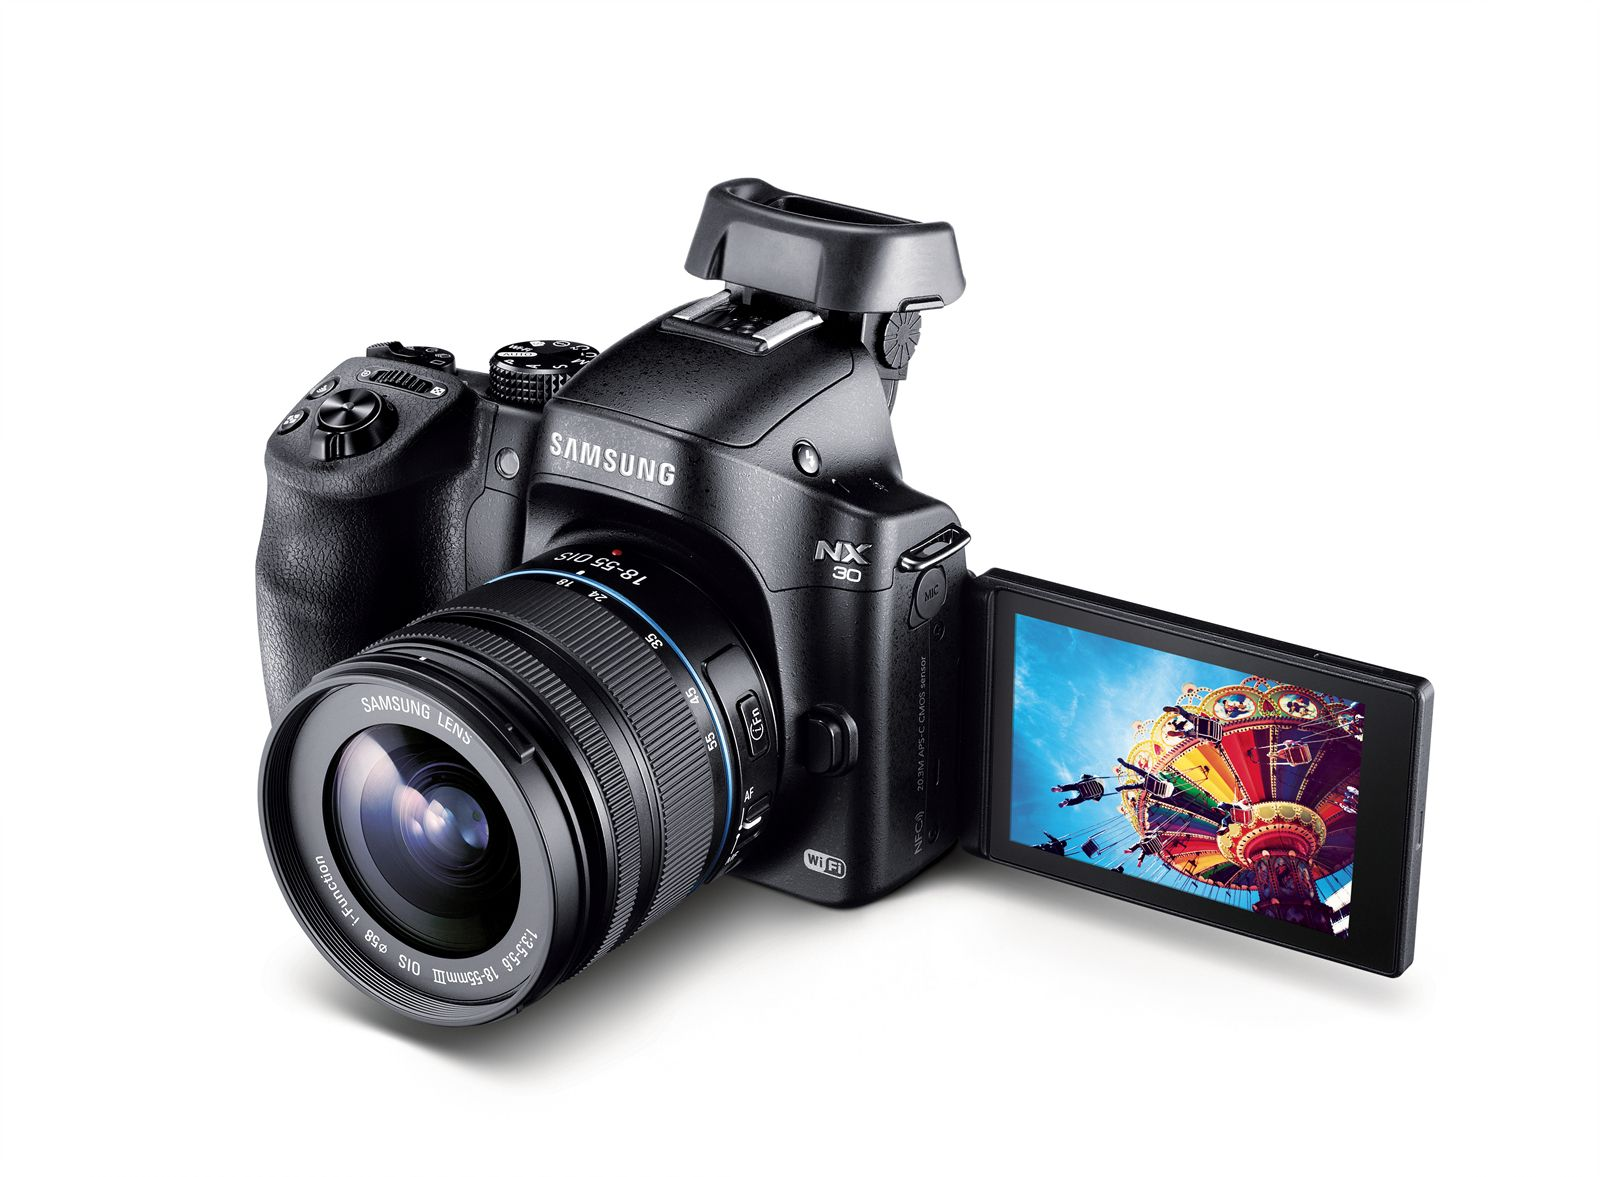 Samsung NX30 | Photographie | Pinterest | Wifi, Compartir y Video camara